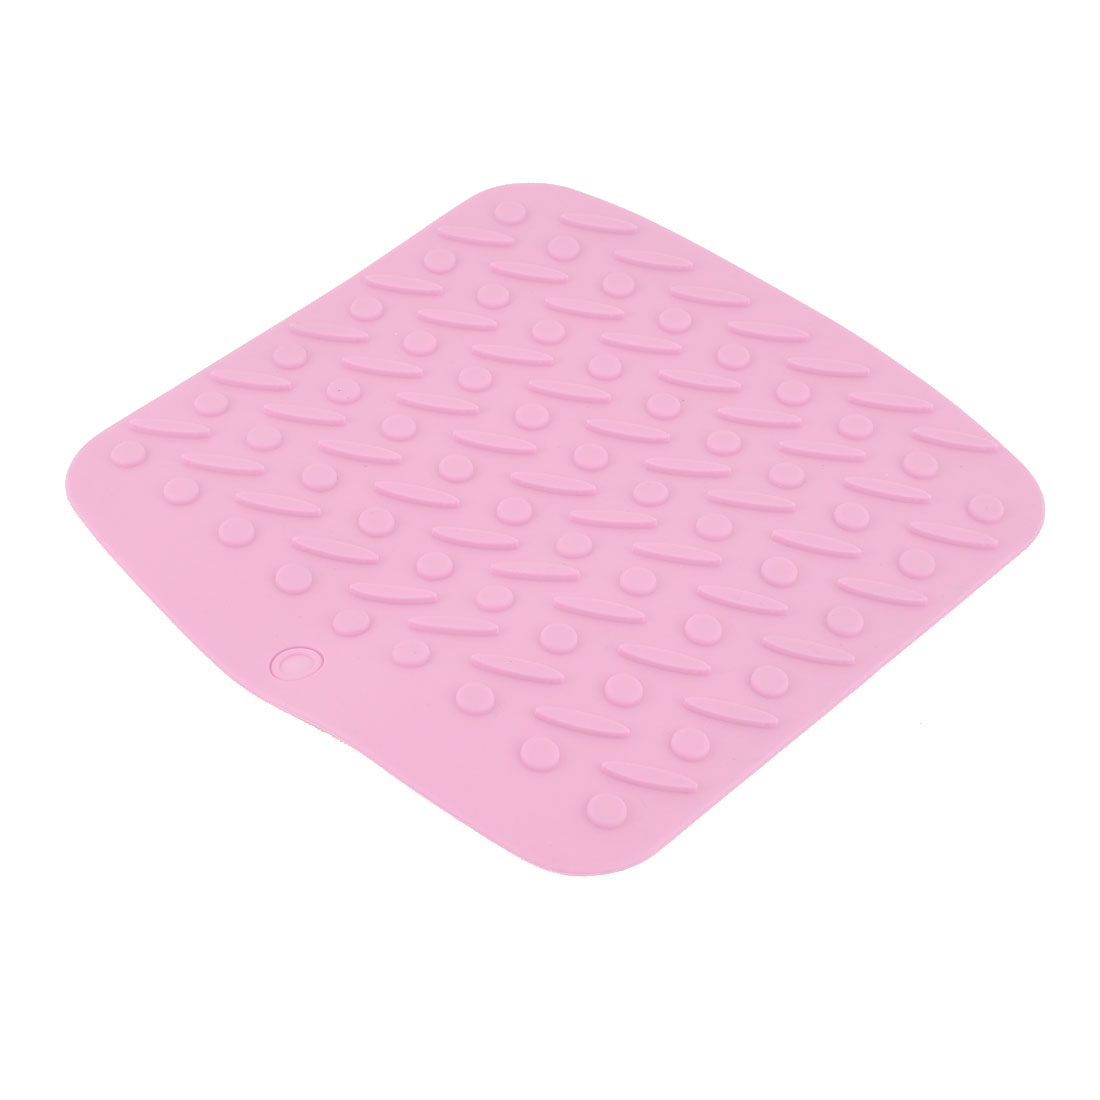 Silicone Rectangle Shaped Heat Insulation Pot Bowl Pad Table Mat Coasters Pink